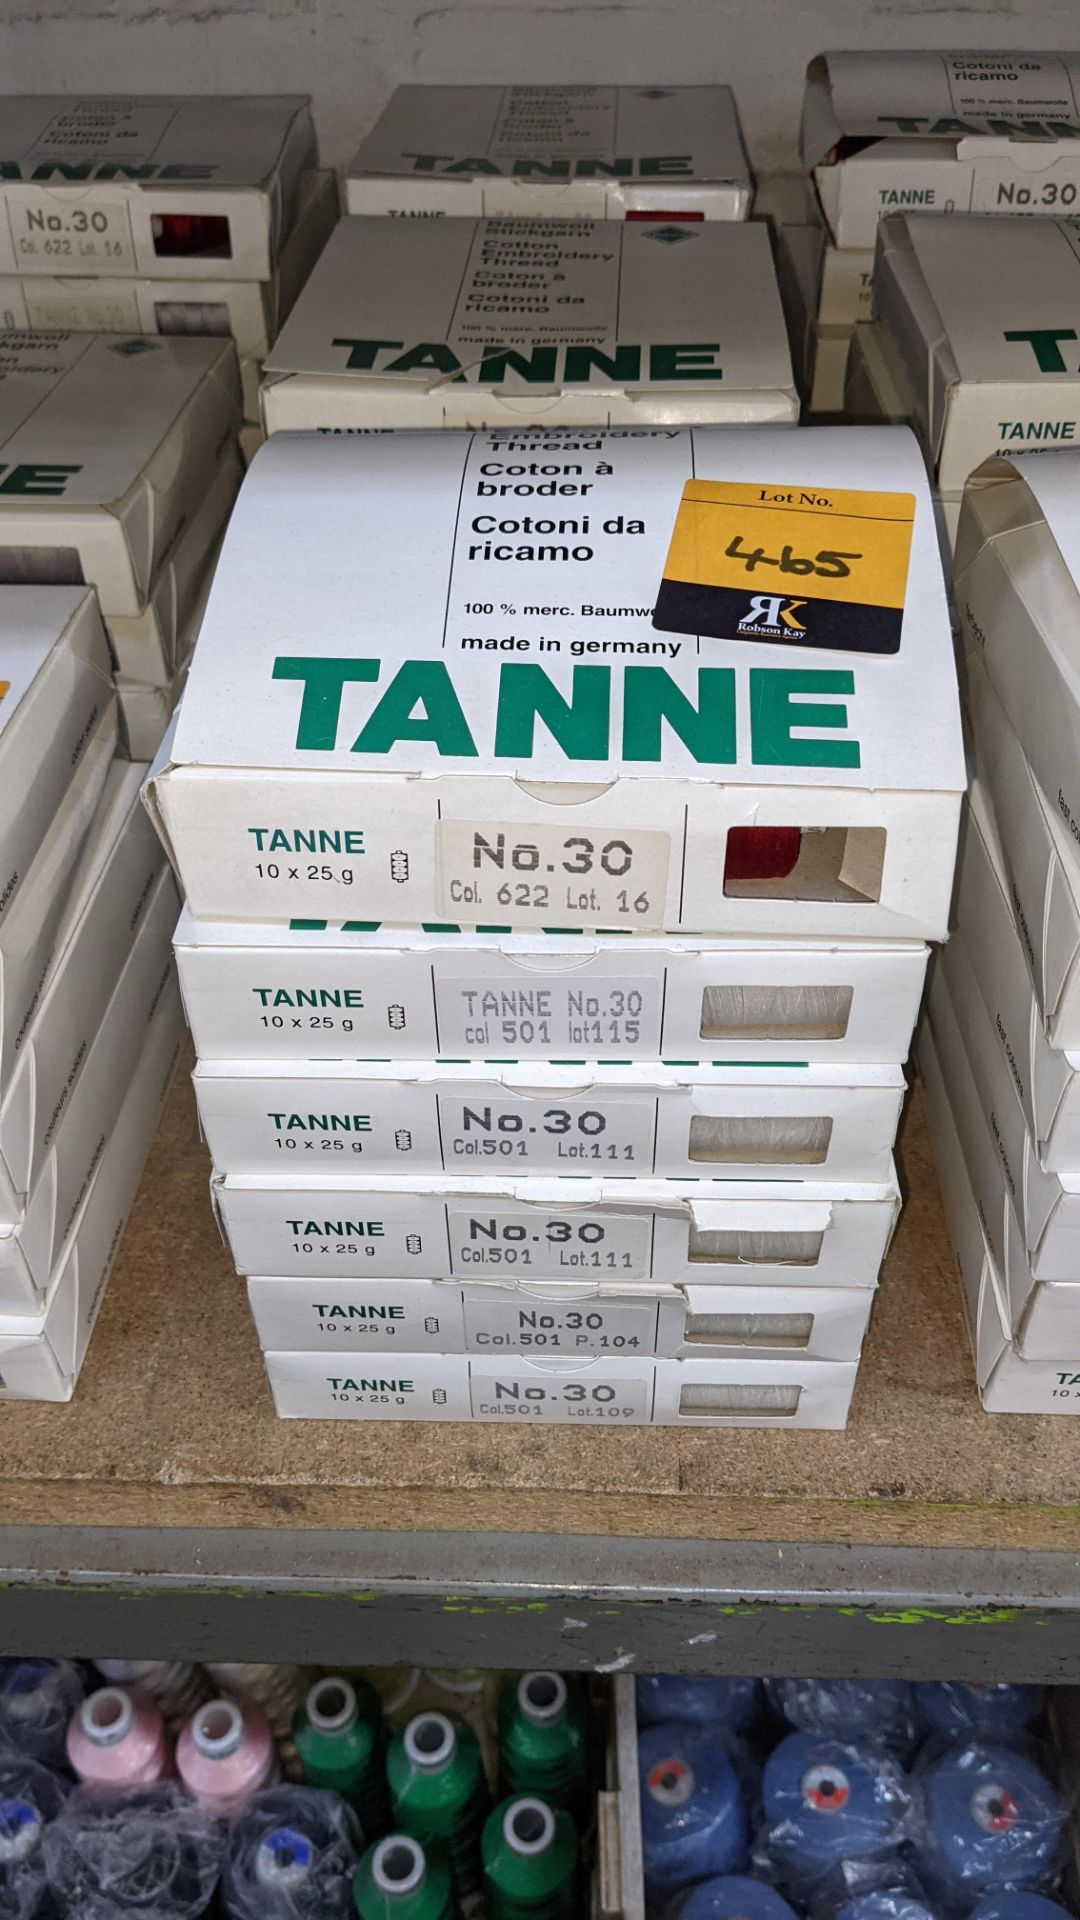 18 boxes of Madeira Tanne (Burmit) cotton embroidery thread - Image 2 of 8